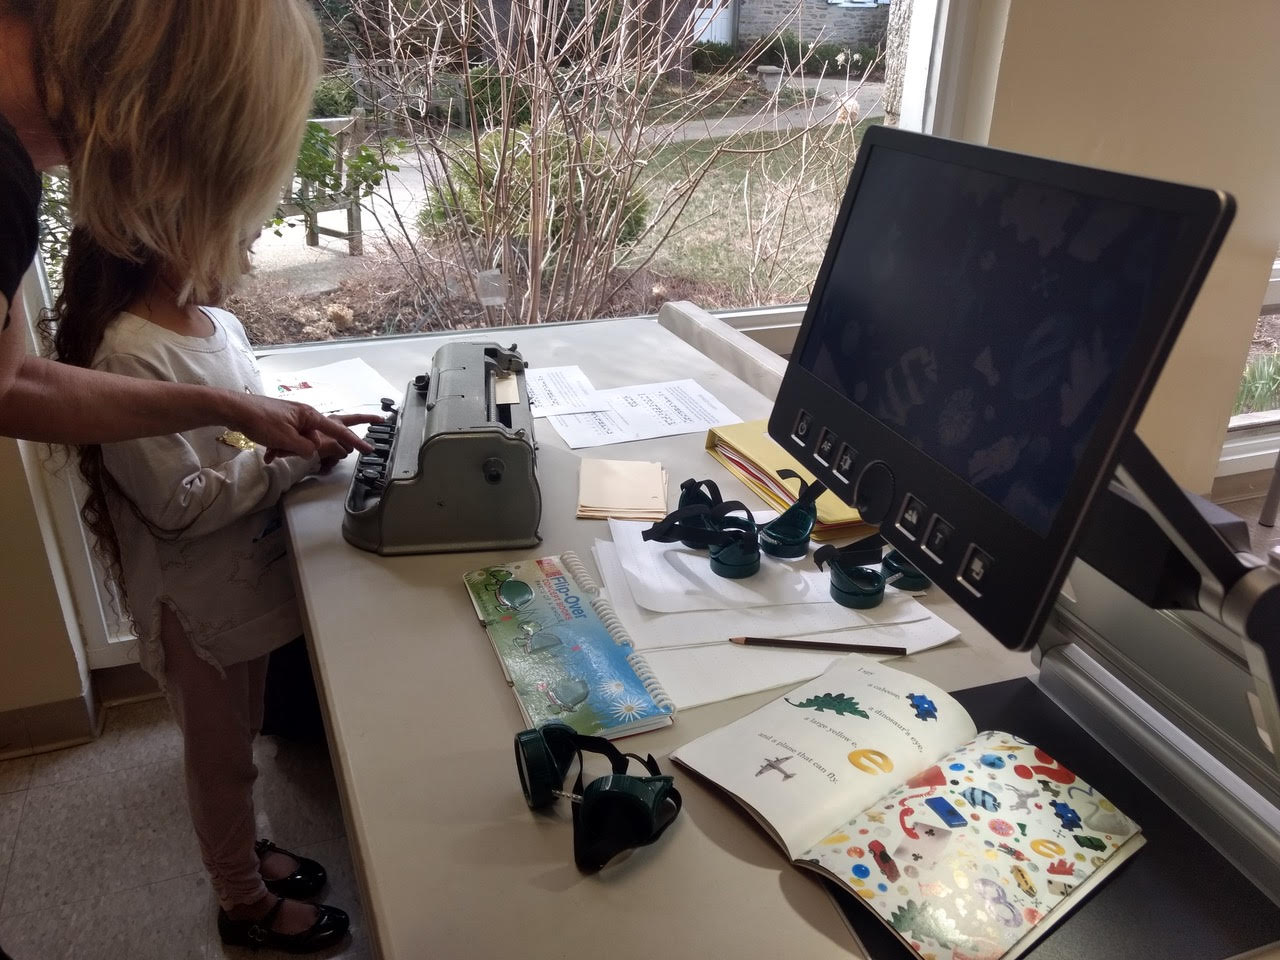 A child learning how to use adaptive accessibility technology at the How to Talk to Kids About Disability event.